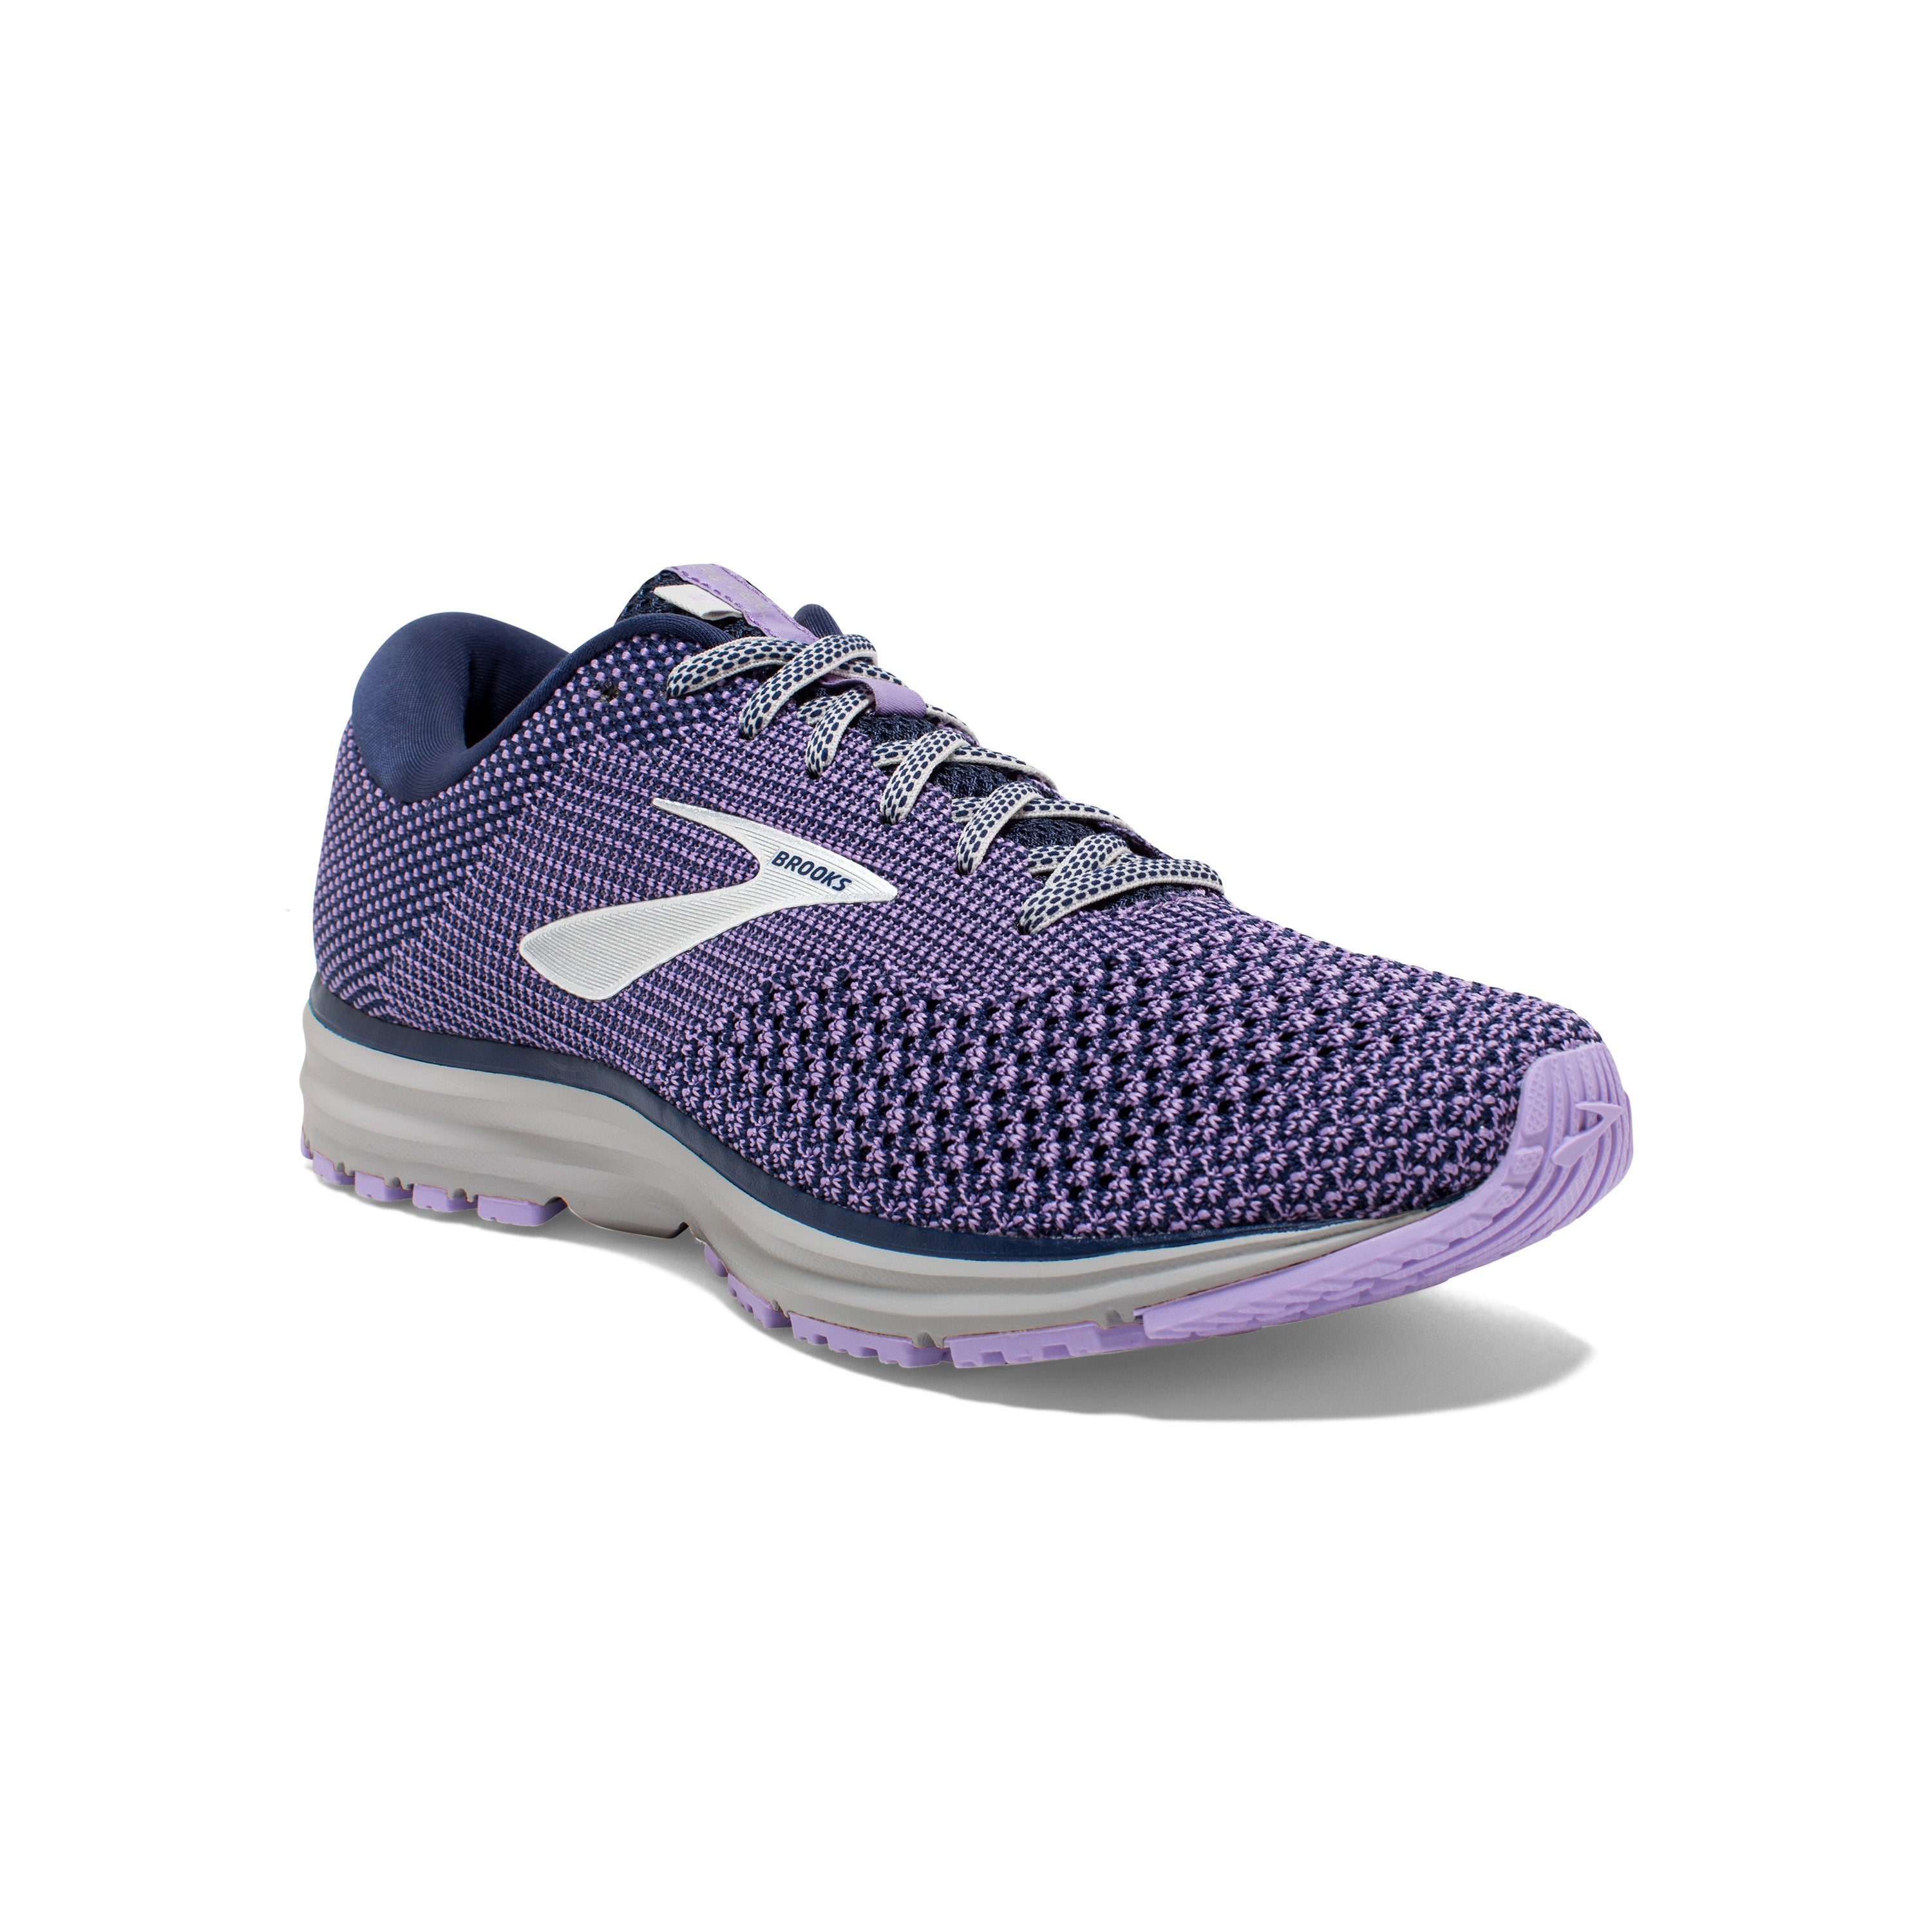 Revel 2 - Lilac / Navy / Silver